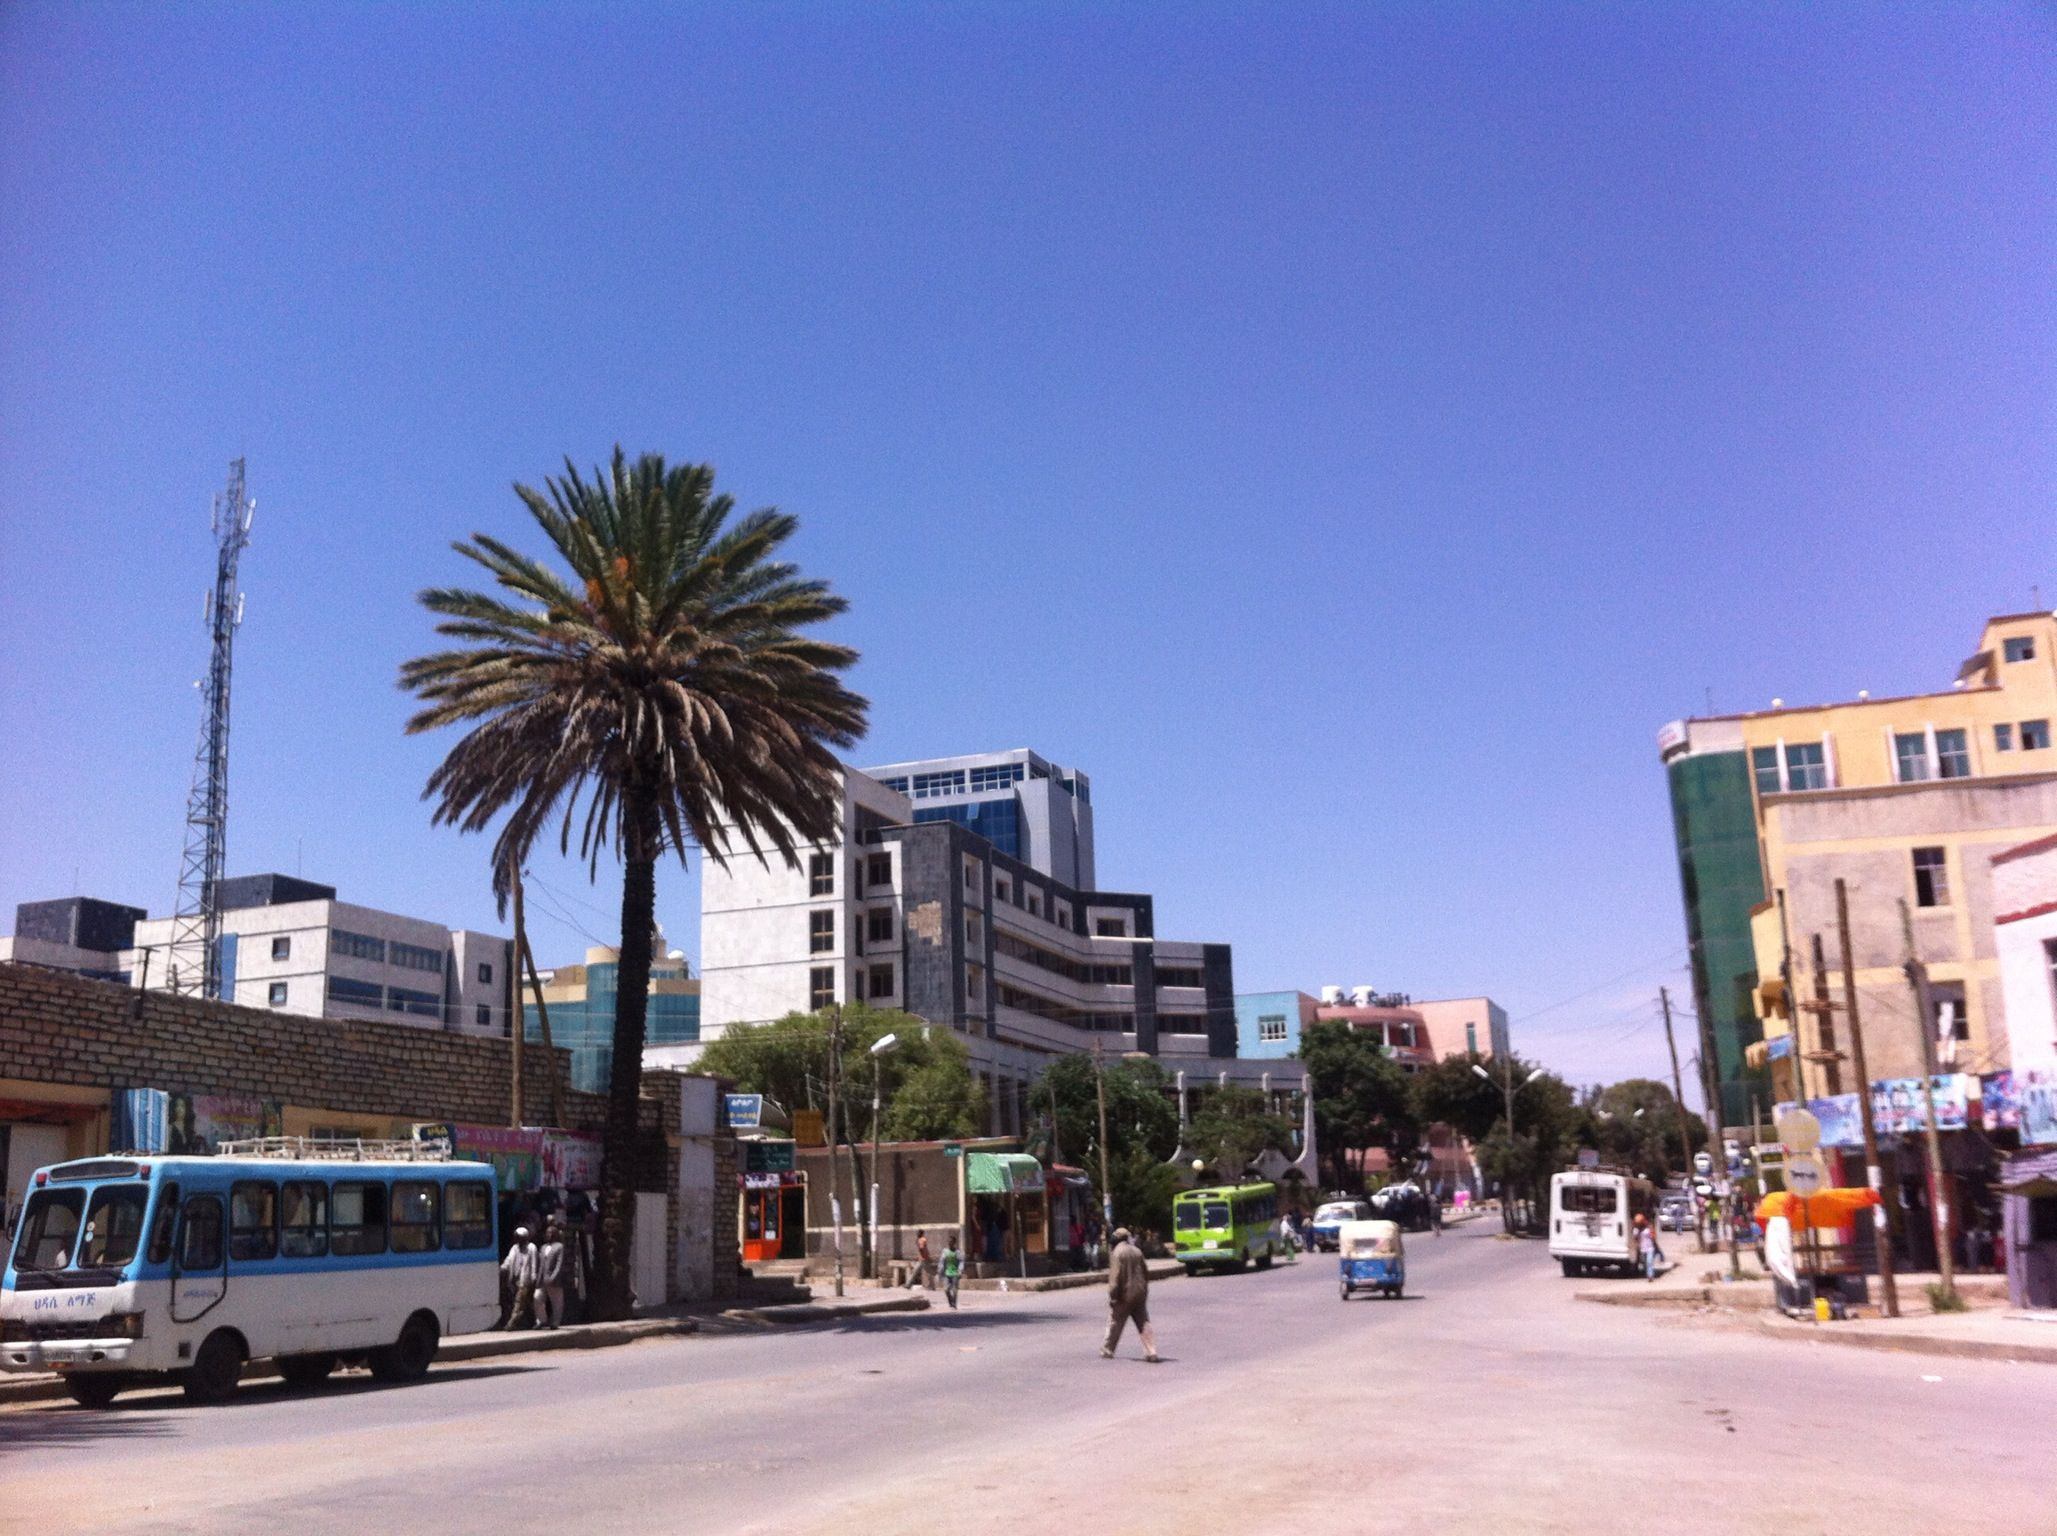 Downtown Mekele, Ethiopia | Beautiful places I have visited